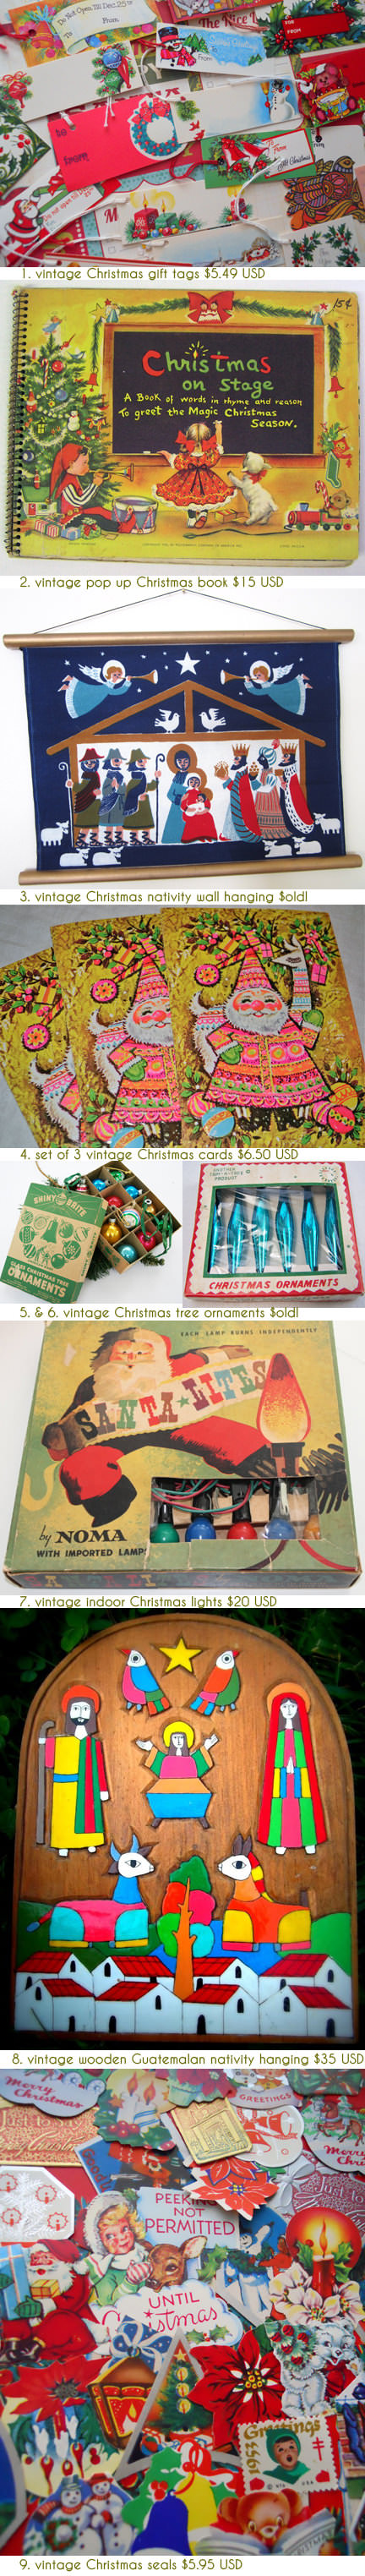 selection of festive vintage Christmas items available on Etsy | H is for Home